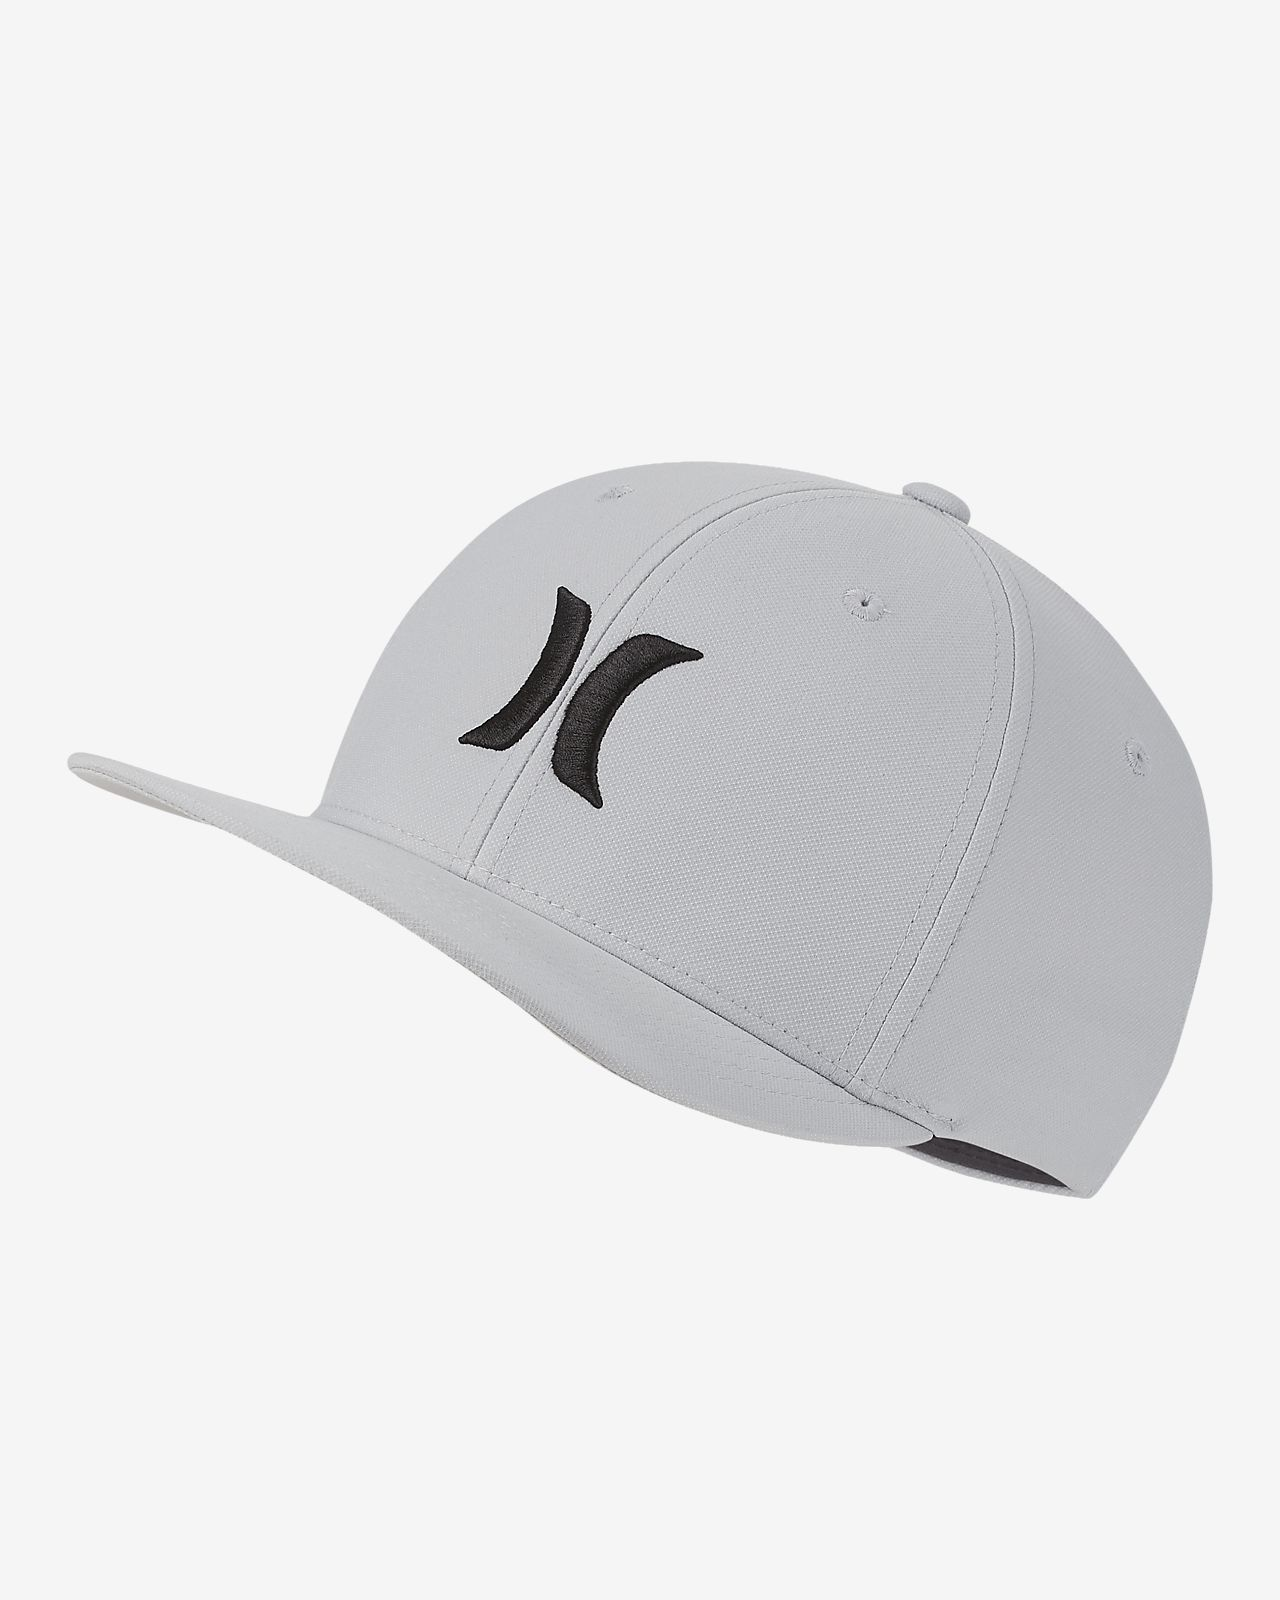 e2306d877adf2 Hurley Dri-FIT One And Only Unisex Fitted Hat. Nike.com